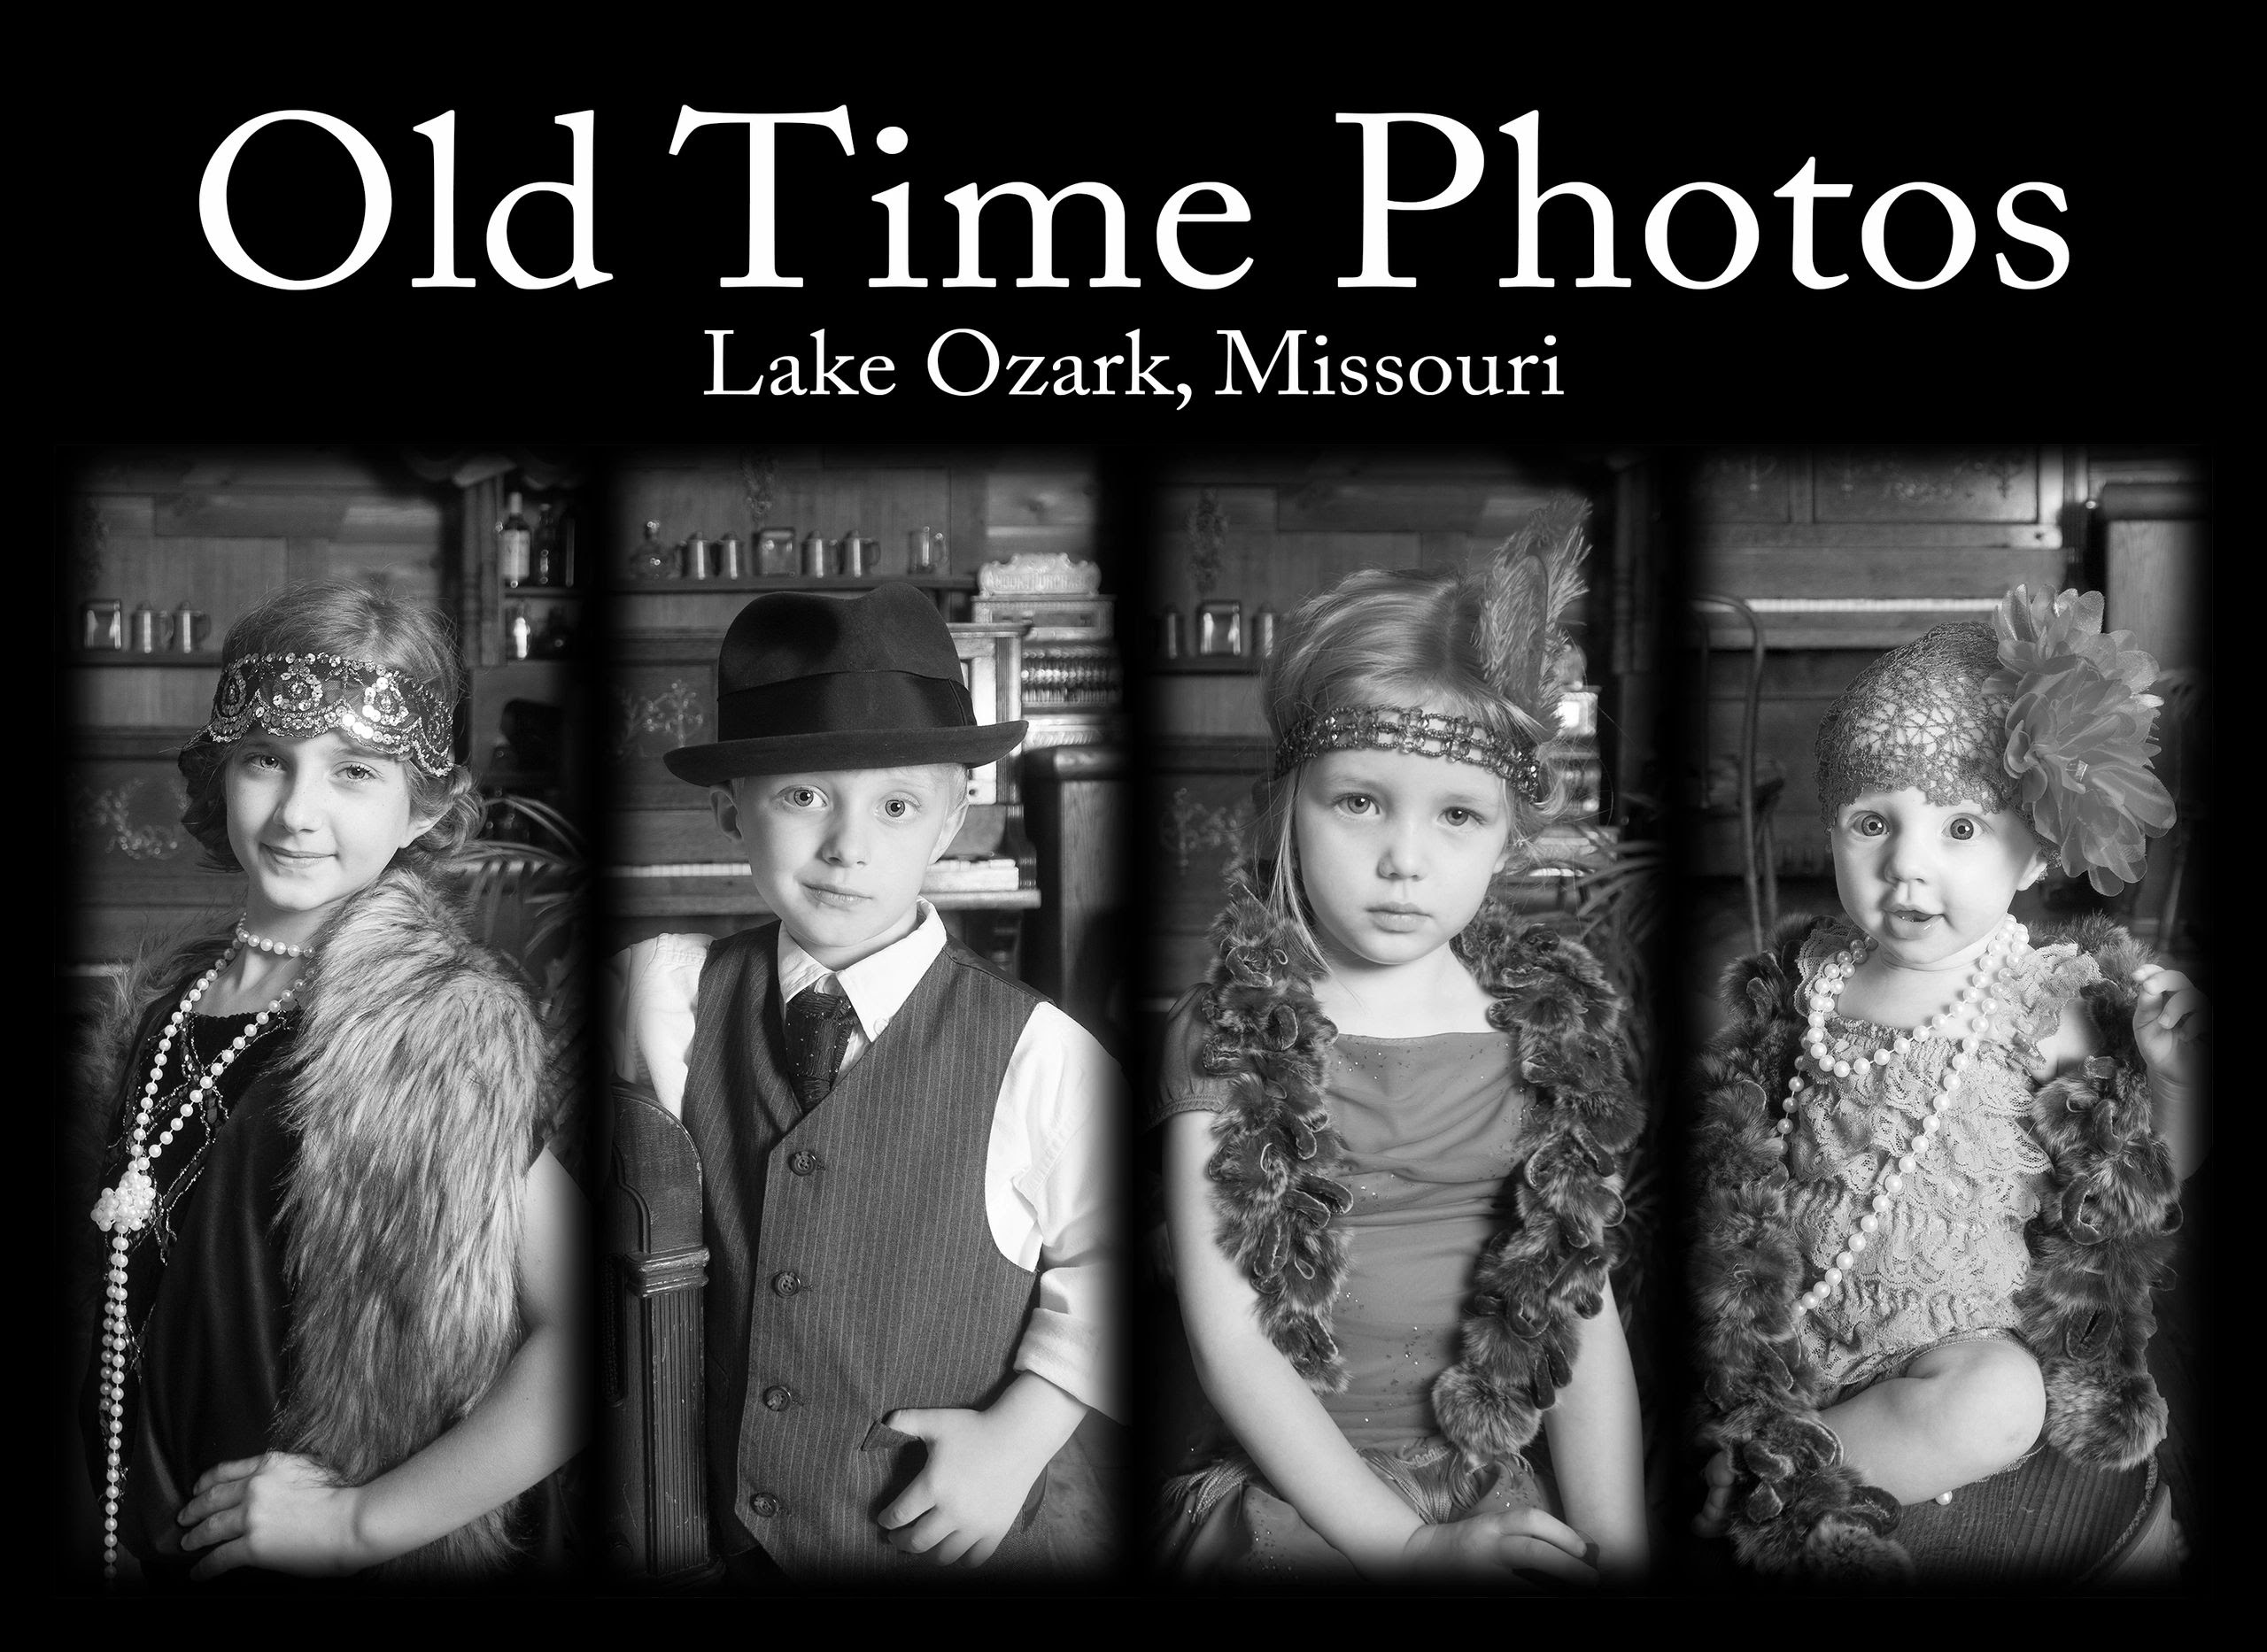 Old Time Photos